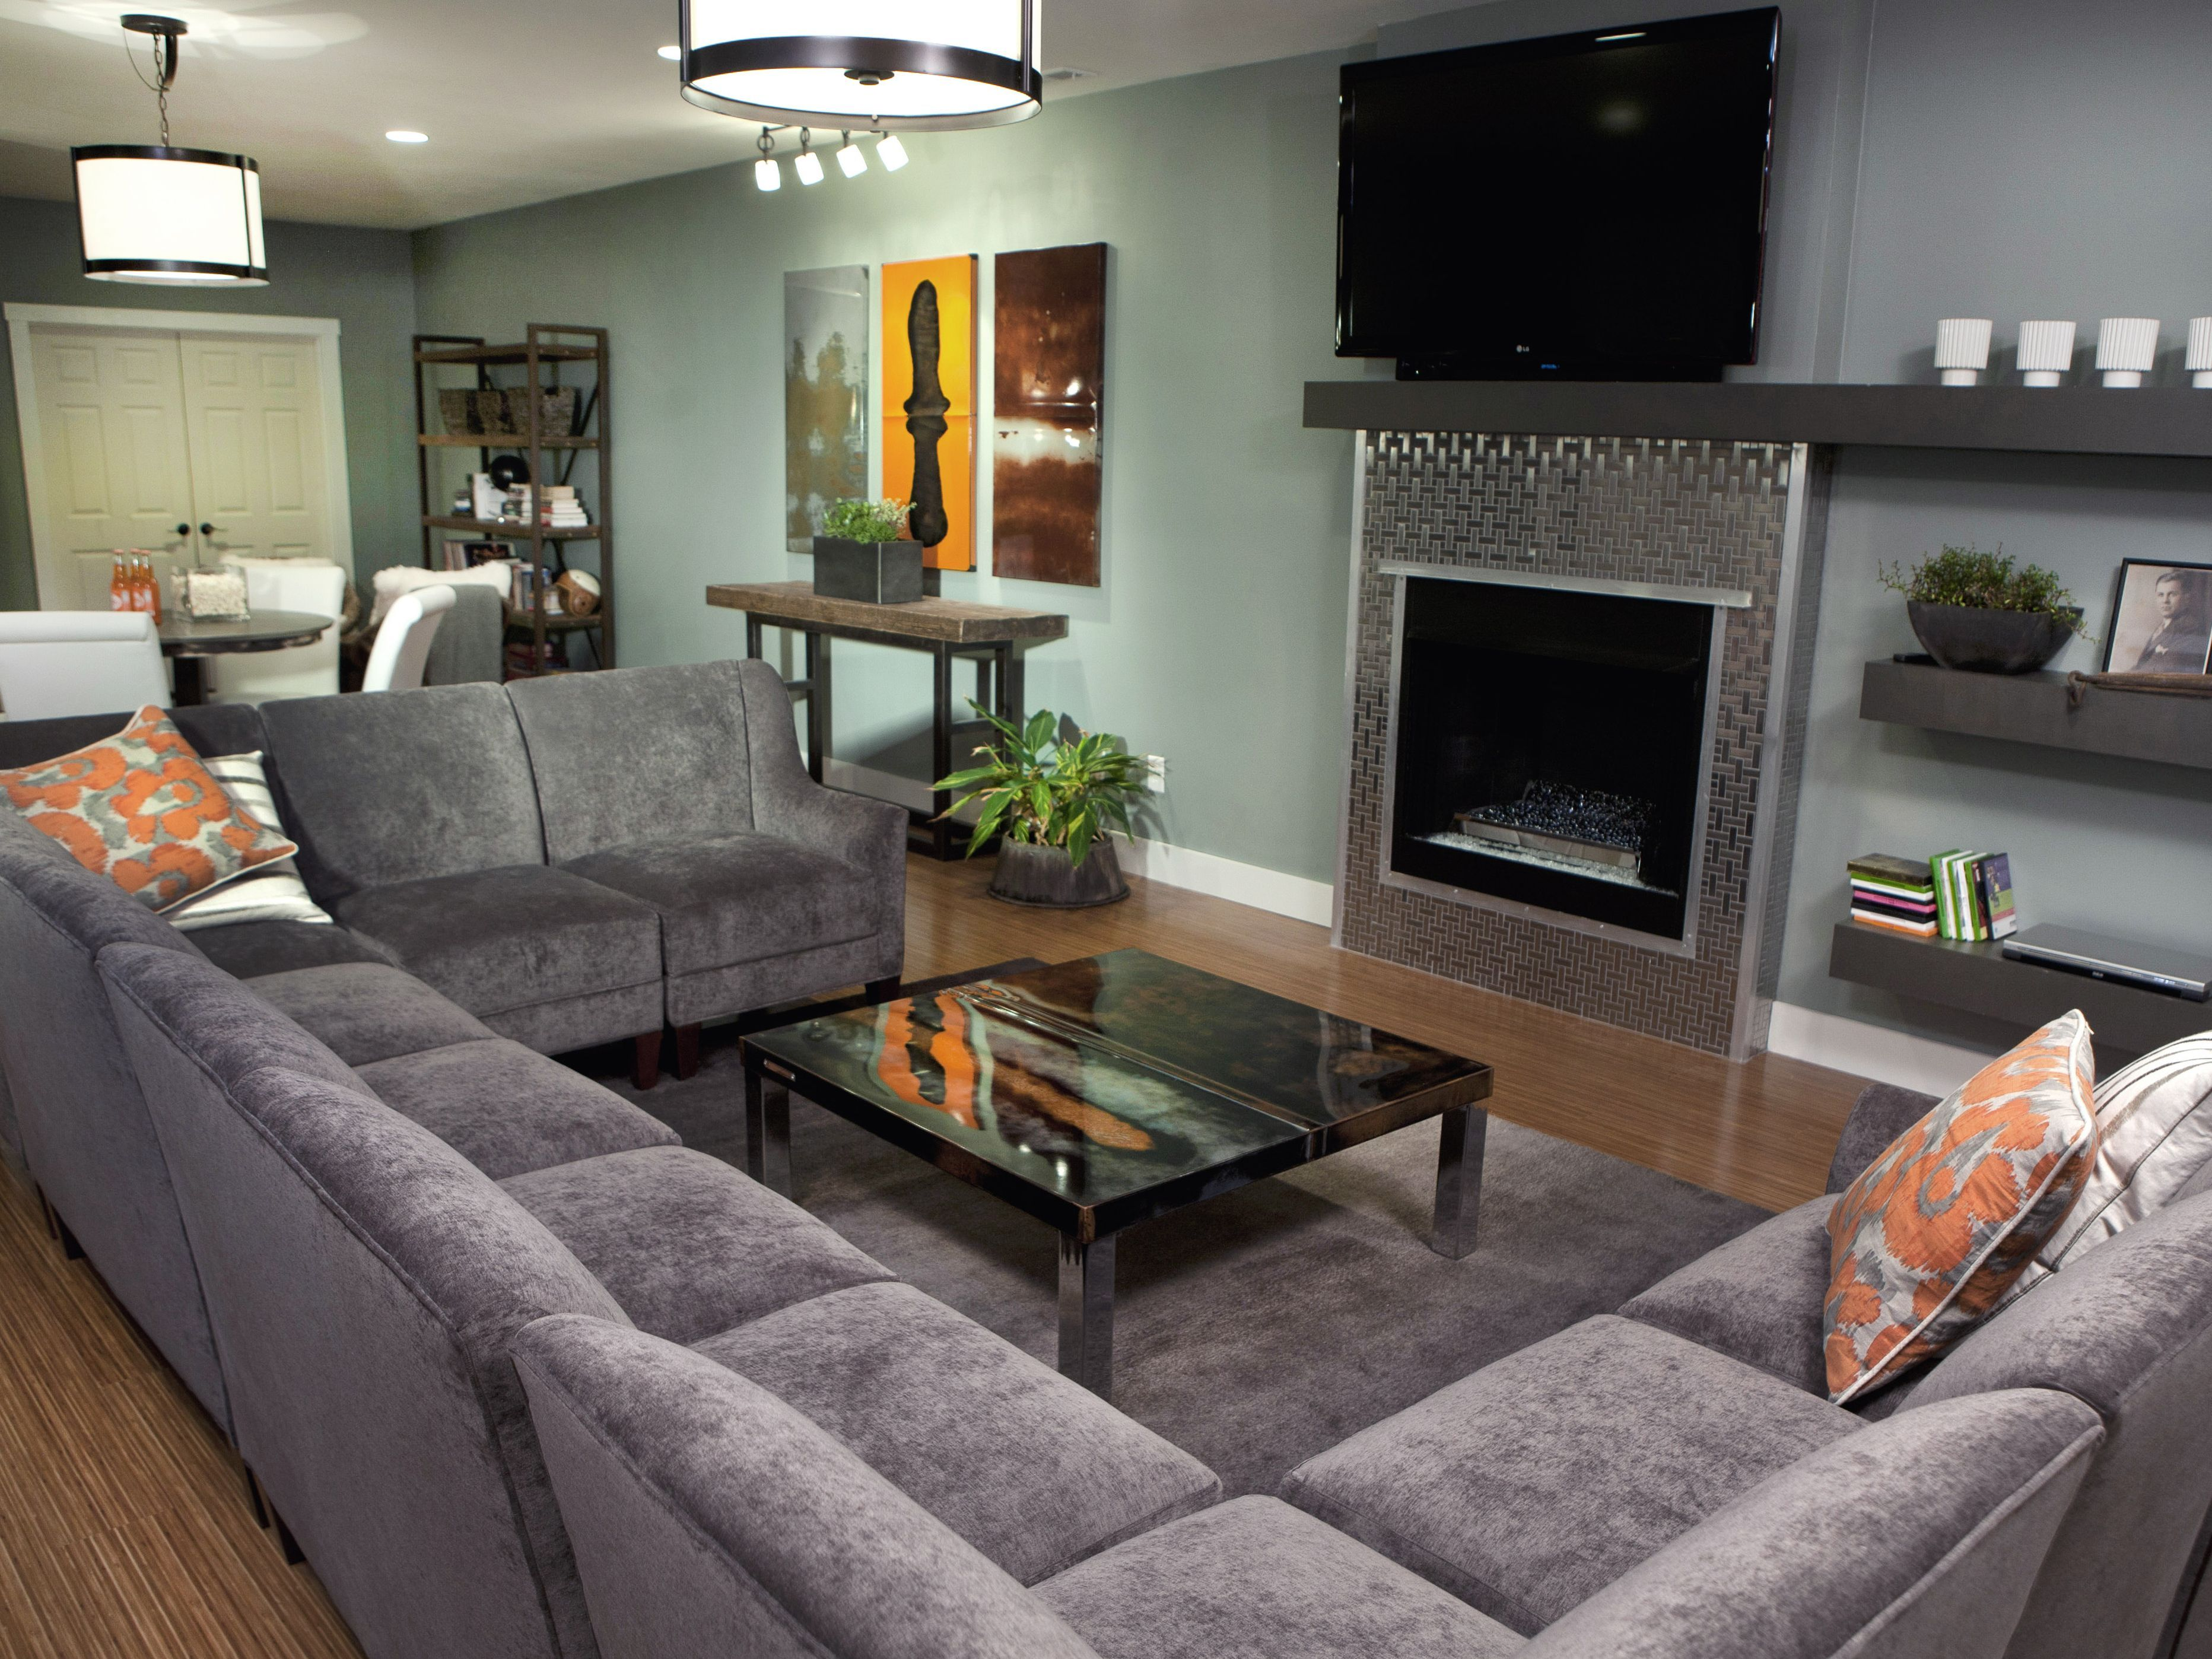 Large Sectional Sofas With Recliners Leather Sectional Large Sectional Sofas In 2020 Narrow Living Room Long Narrow Living Room Long Living Room